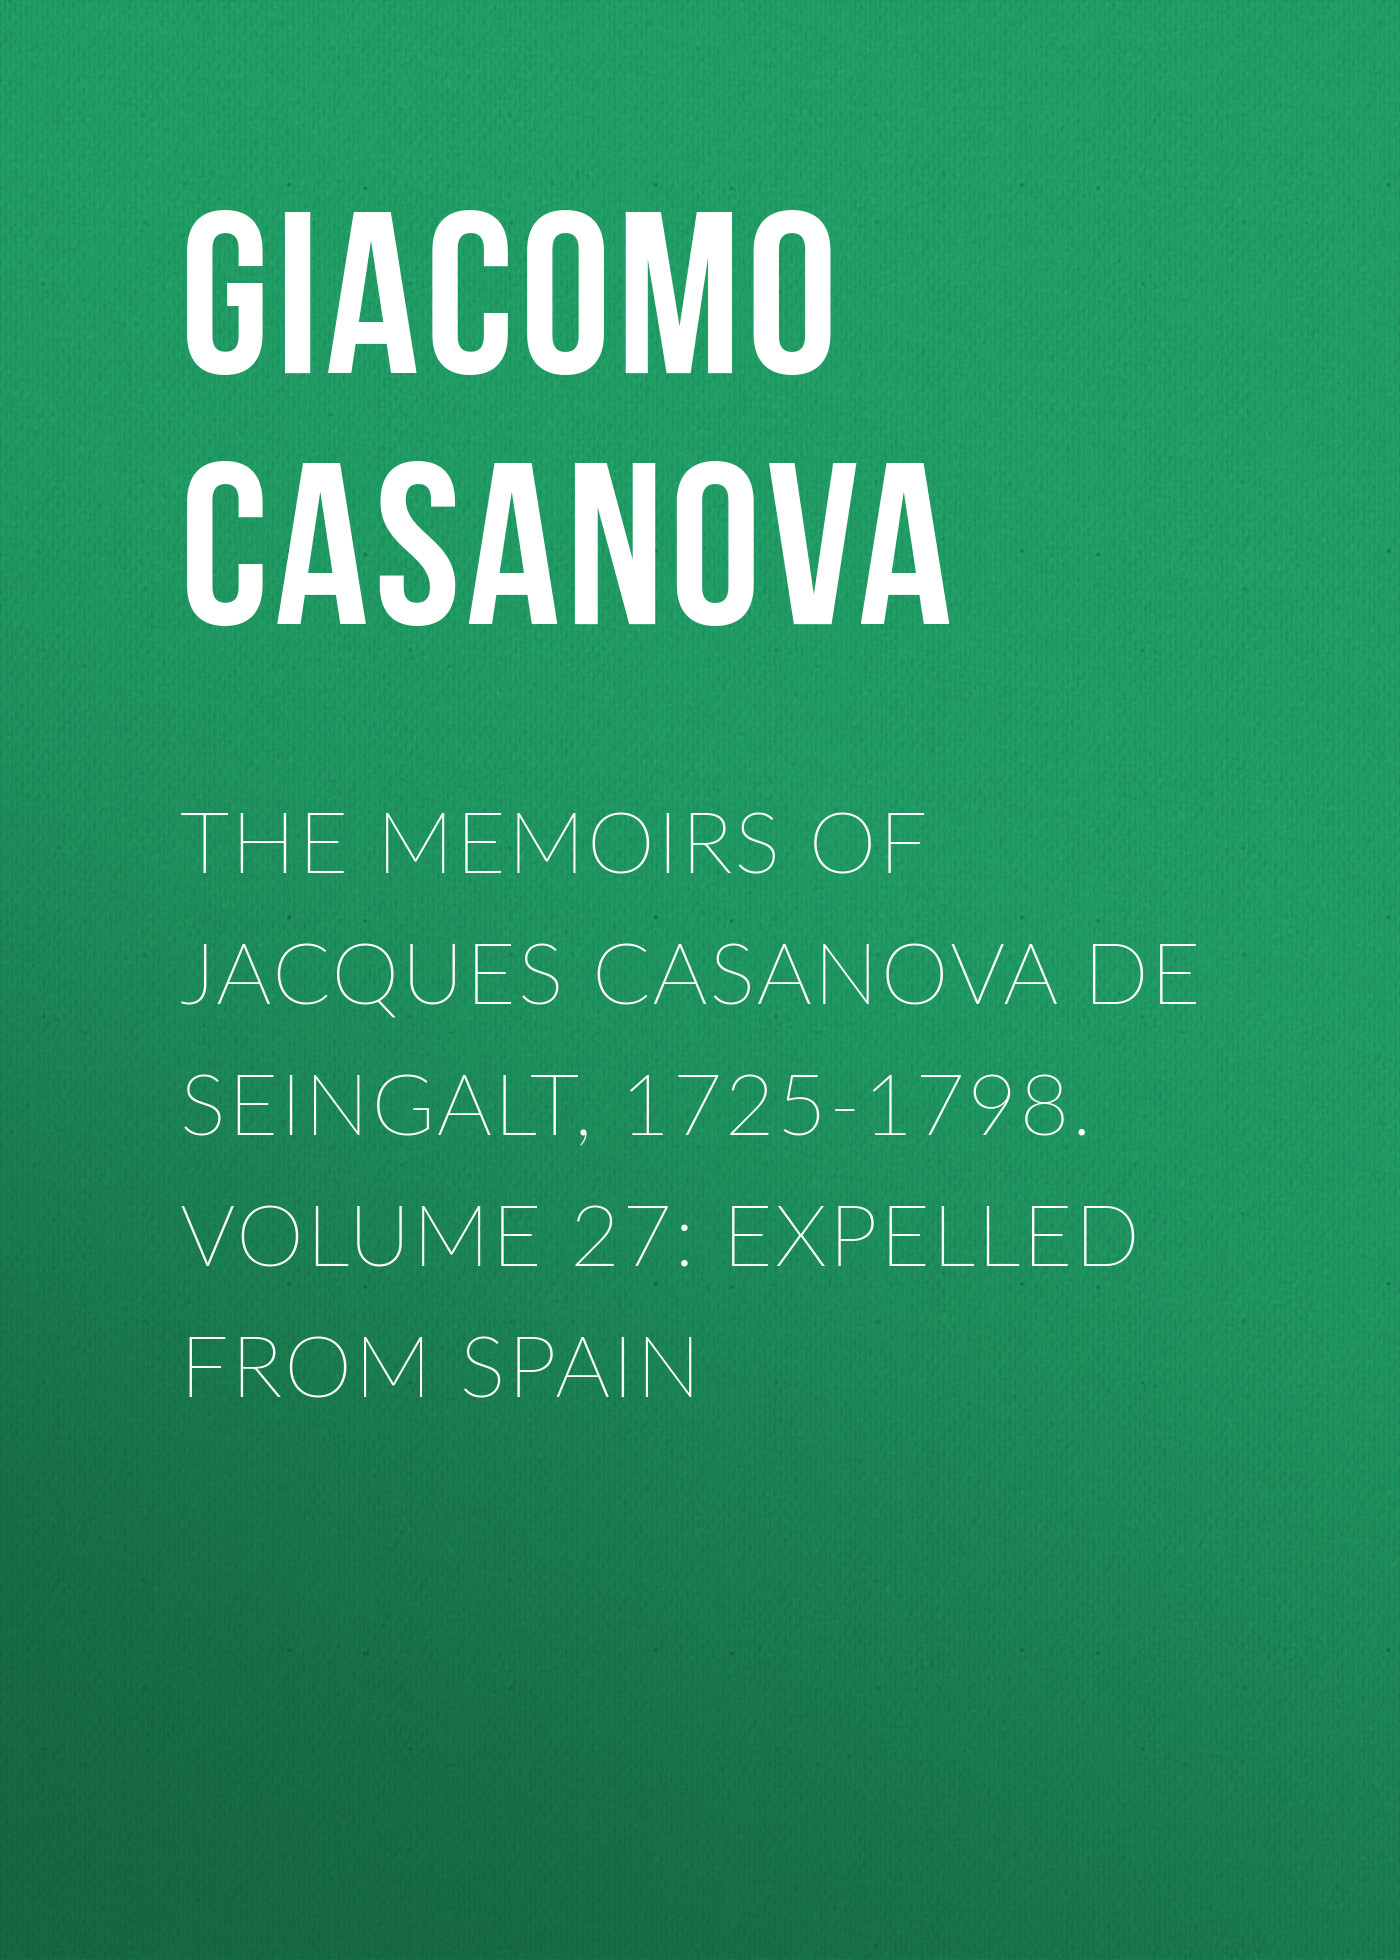 Giacomo Casanova The Memoirs of Jacques Casanova de Seingalt, 1725-1798. Volume 27: Expelled from Spain giacomo casanova the memoirs of jacques casanova de seingalt 1725 1798 volume 30 old age and death